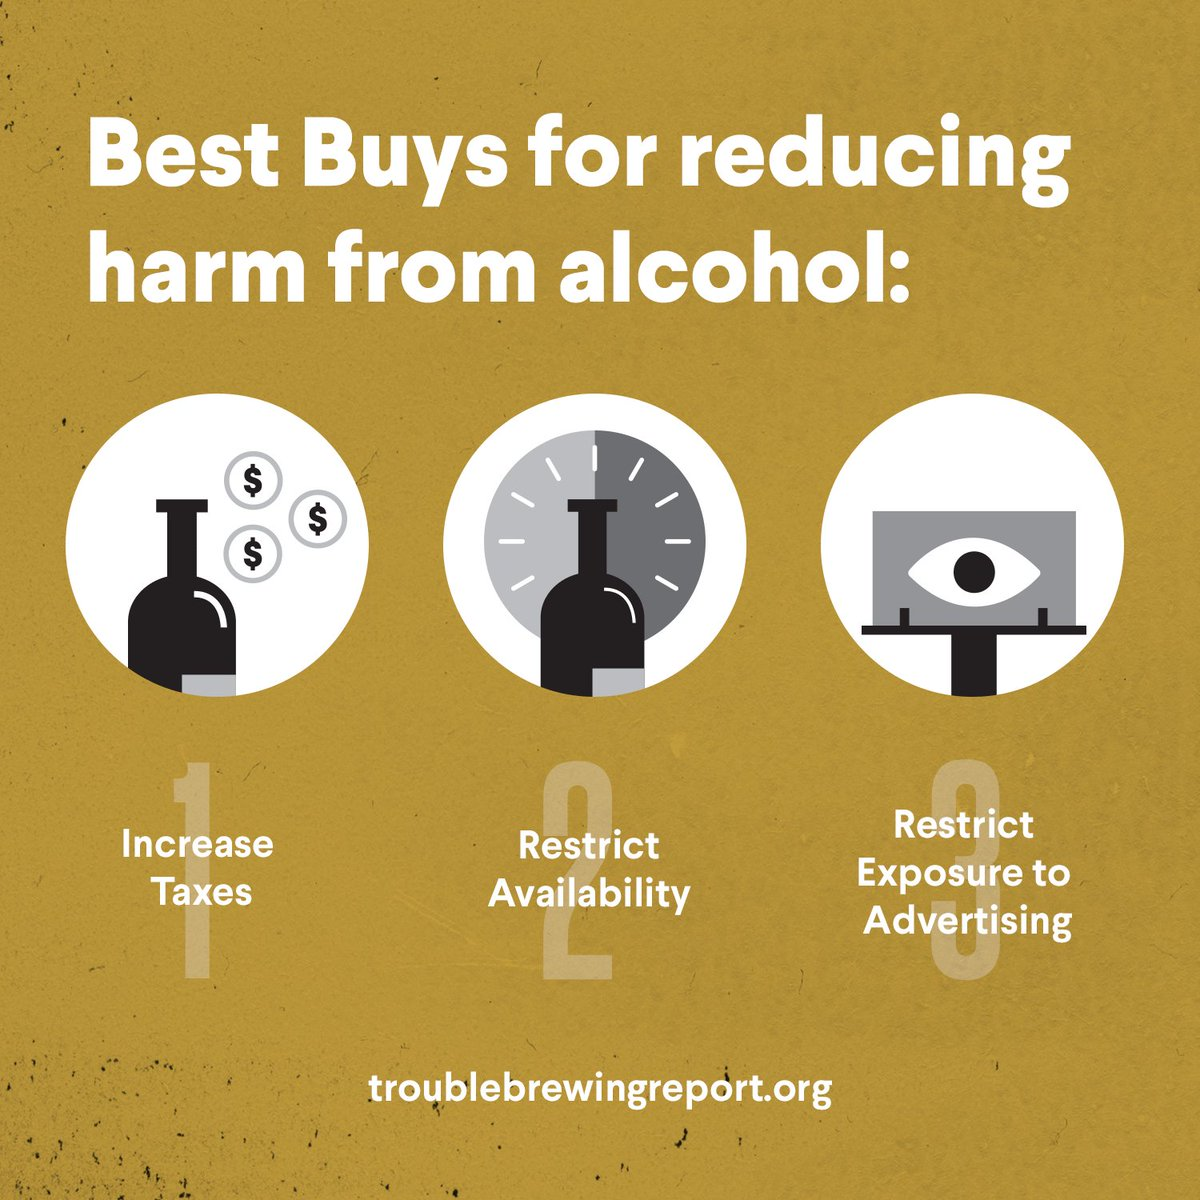 csr in the alcohol industry Csr or corporate social responsibility signifies the relationship between businesses and the society there are several benefits of investing in csr and sustainability businesses are not here just for profits but also to become good corporate citizens and help the society progress.